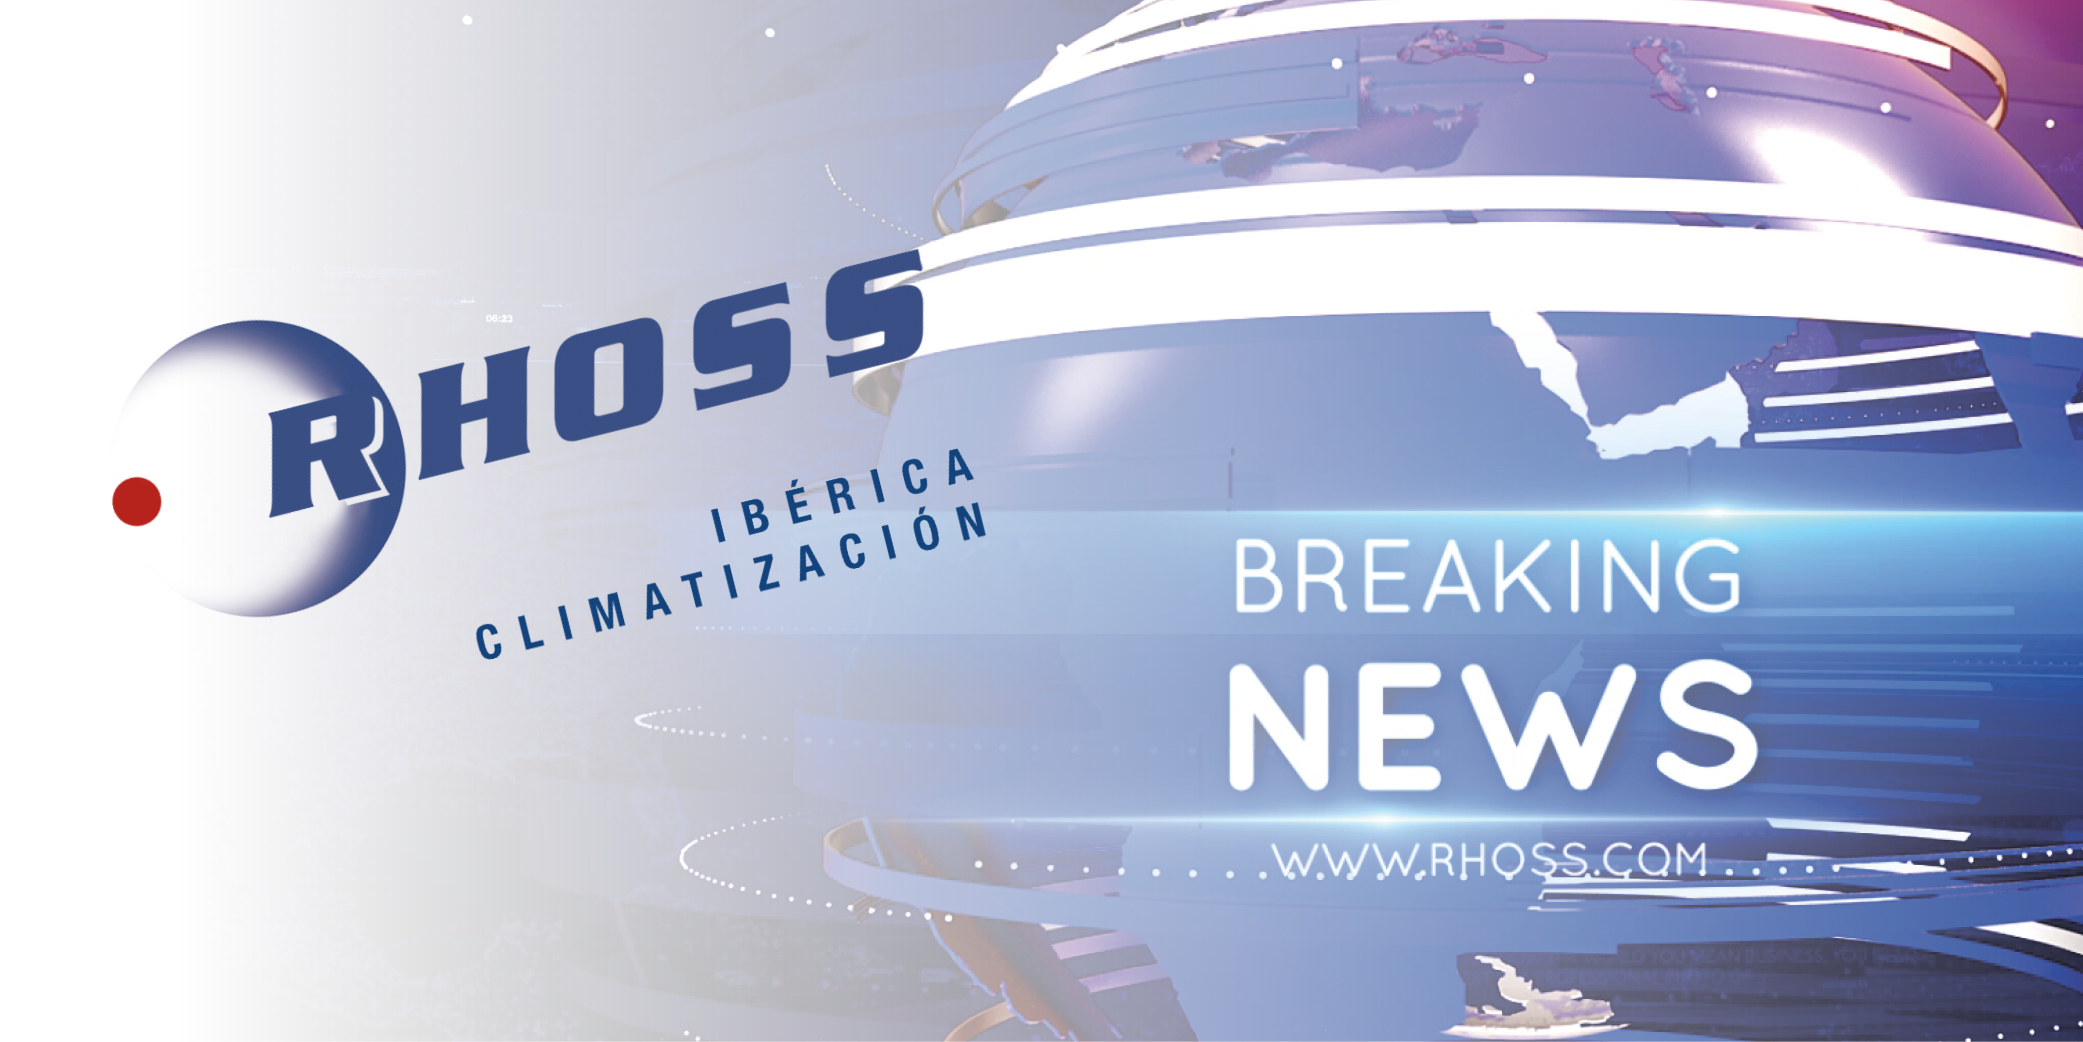 Rhoss to acquire shares in Rhoss Ibérica Climatizaciòn